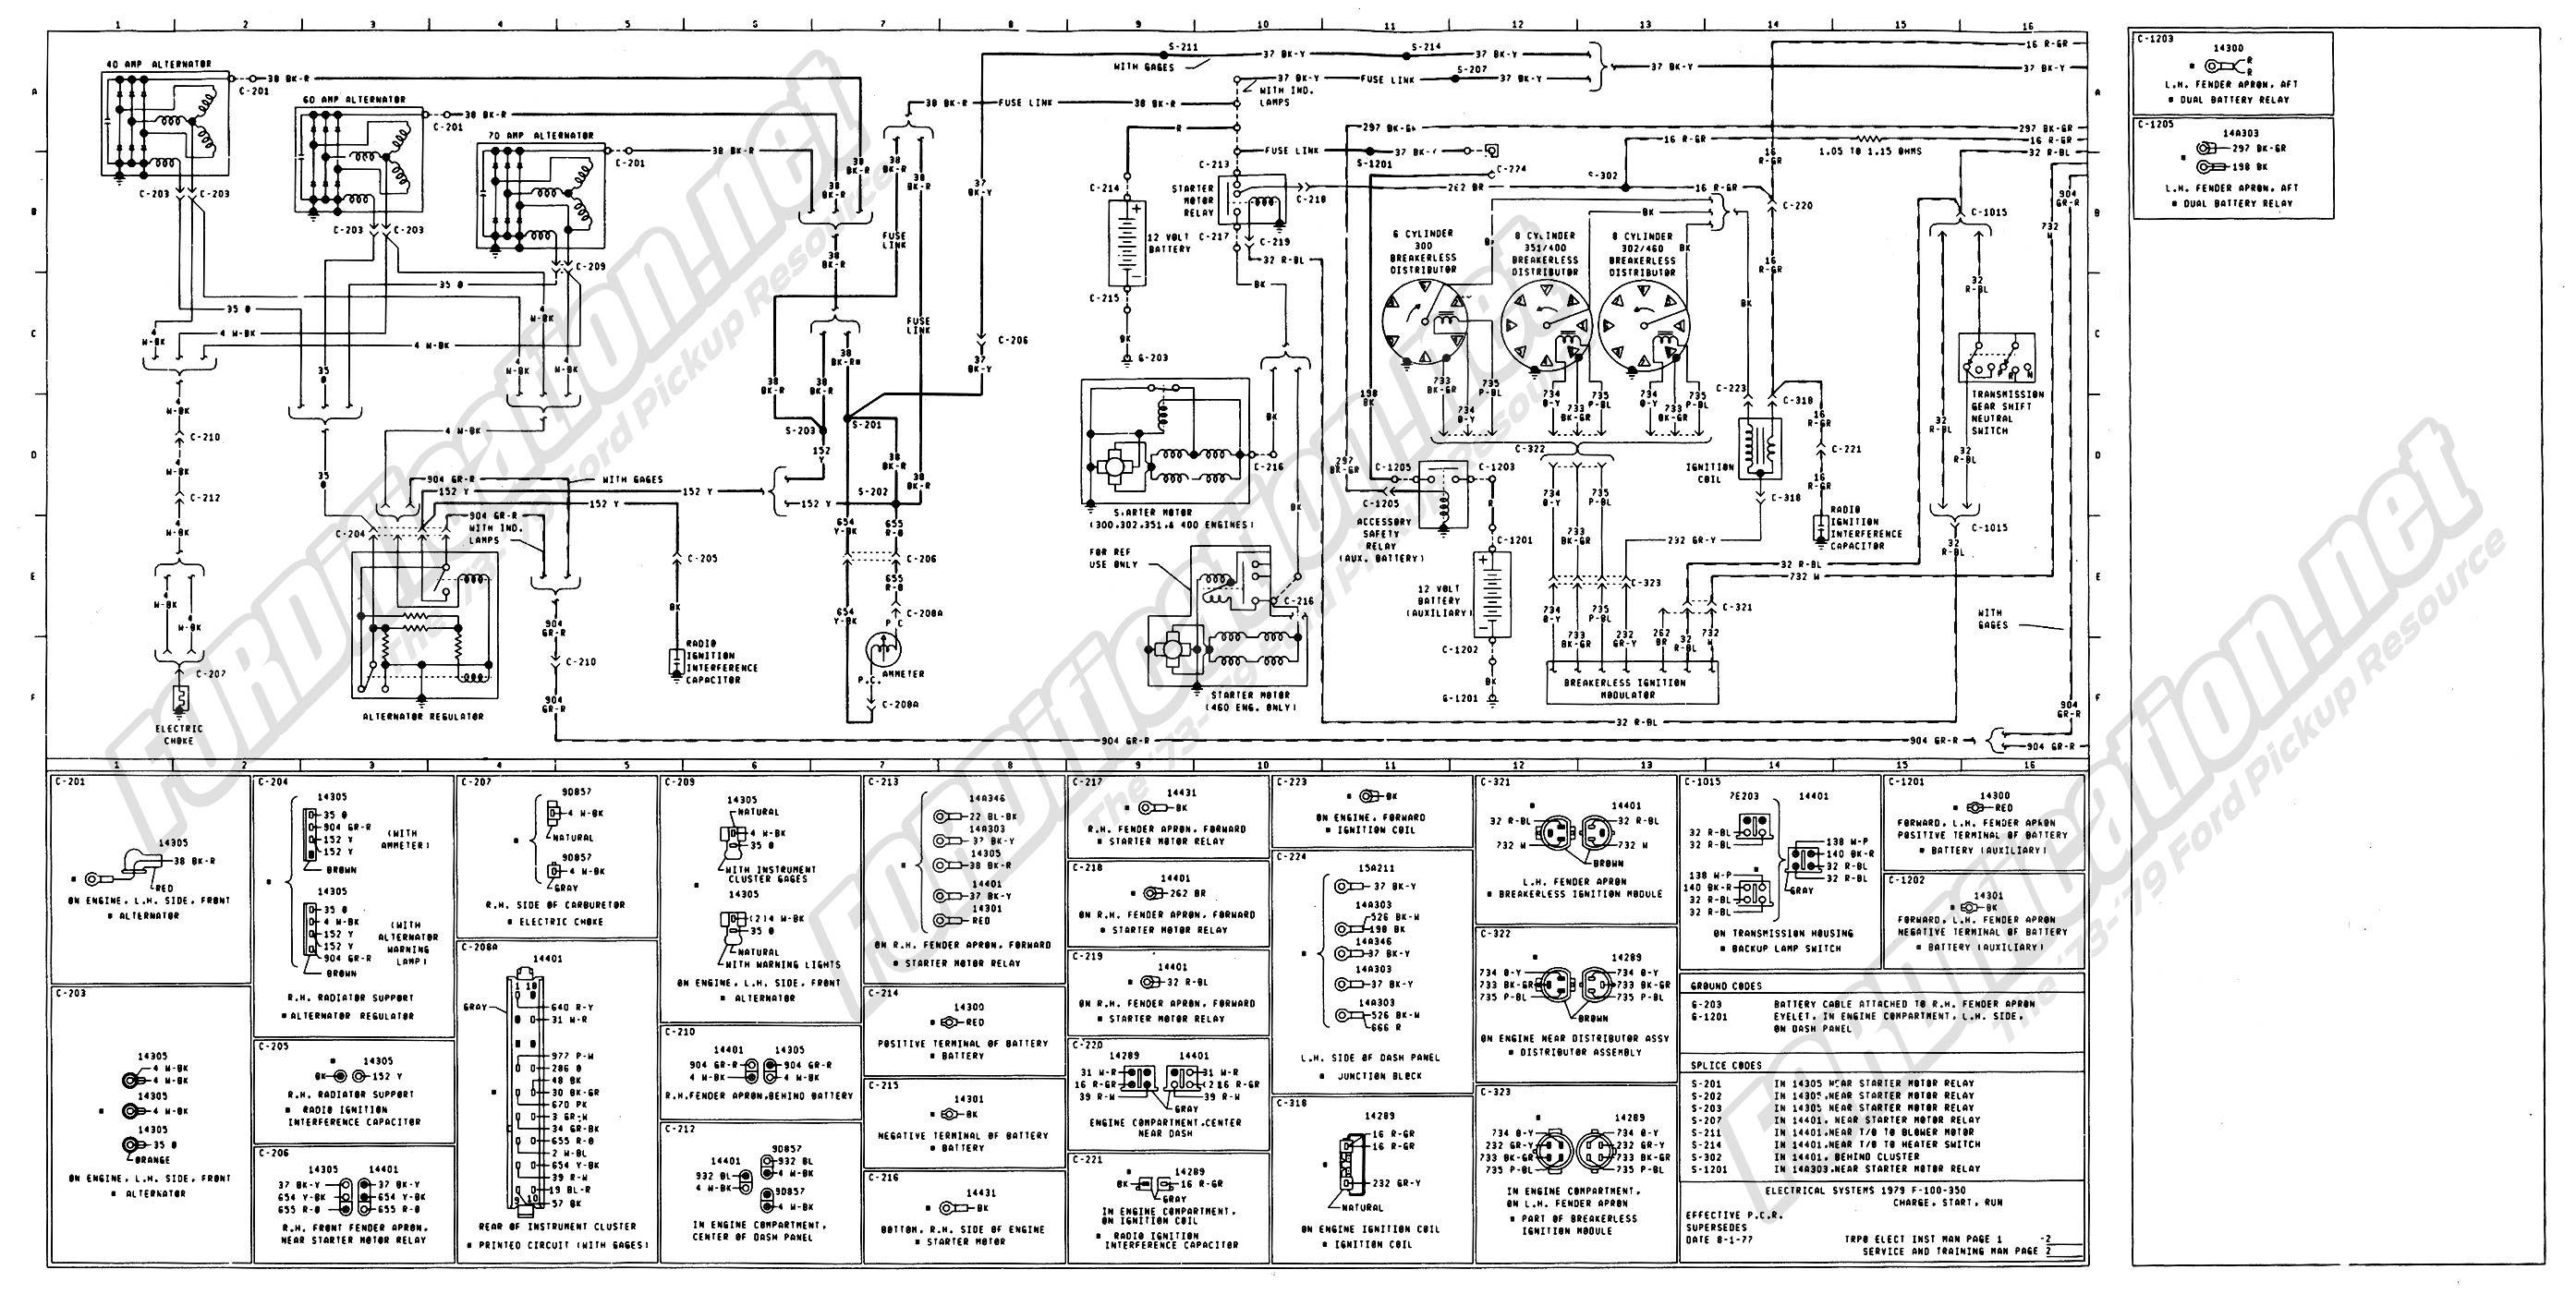 1979 Ford Factory Radio Wiring Content Resource Of Diagram 2004 Mustang 1973 Truck Diagrams Schematics Fordification Net Rh Wire Colors 98 Explorer